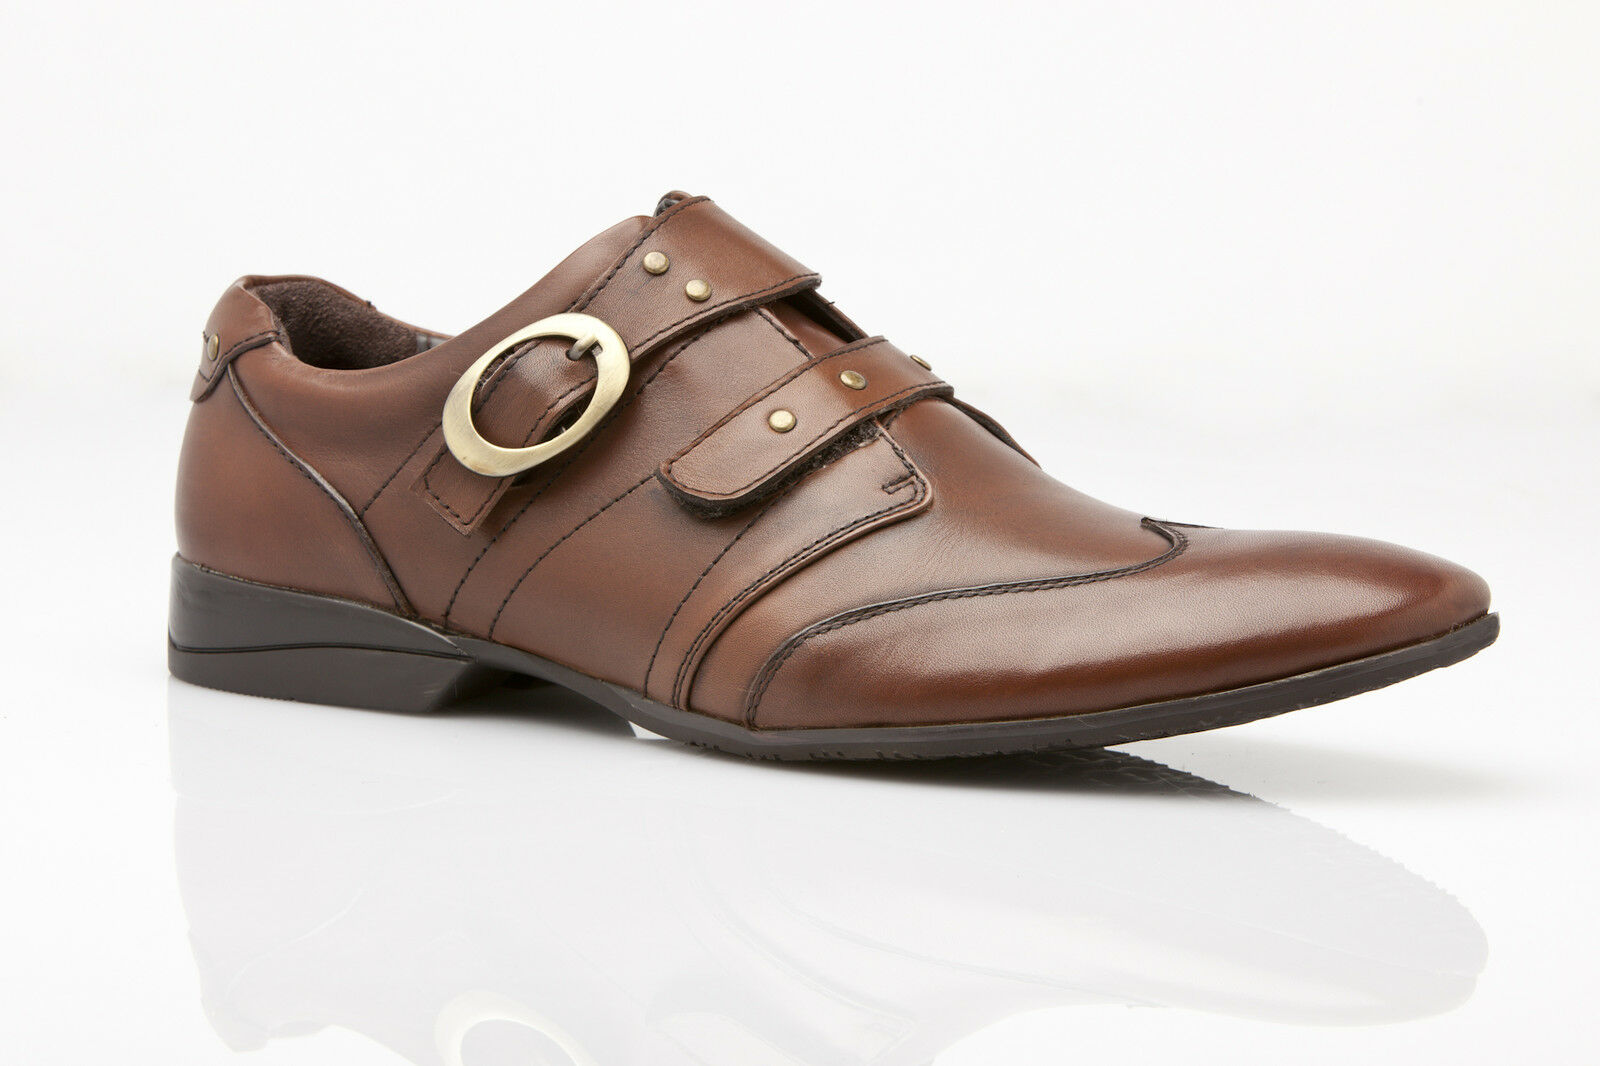 NEW MENS ZASEL AUSTRALIAN DESIGN DRESS BROWN CASUAL FORMAL LEATHER SHOES SLIP ON SHOES LEATHER b66e52